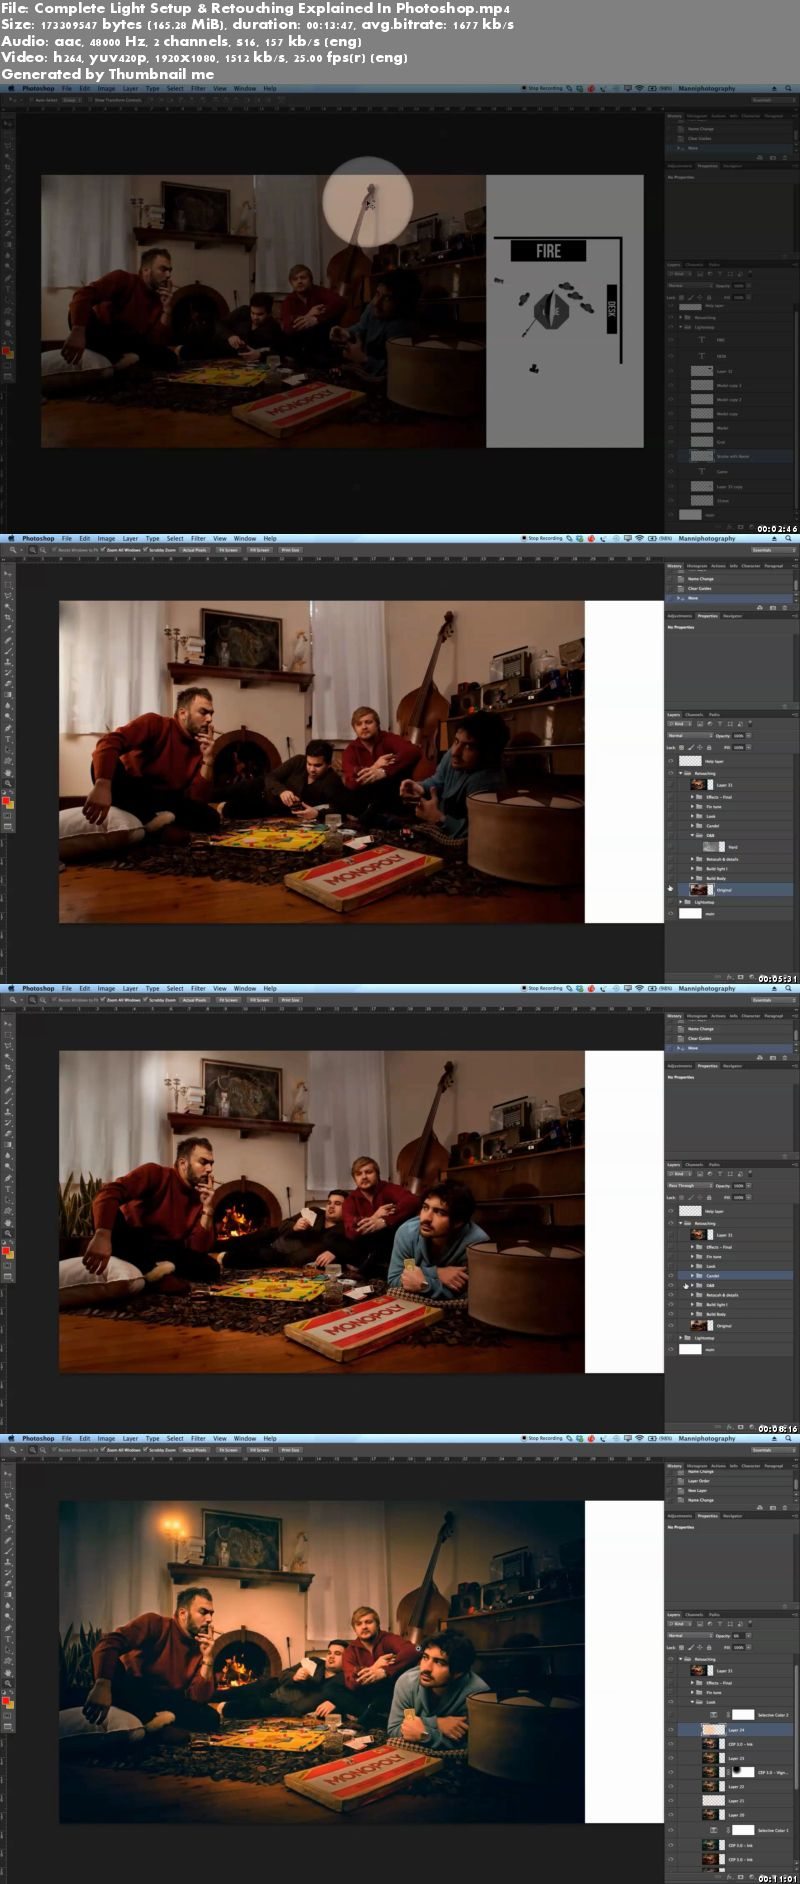 Complete Light Setup & Retouching Explained In Photoshop